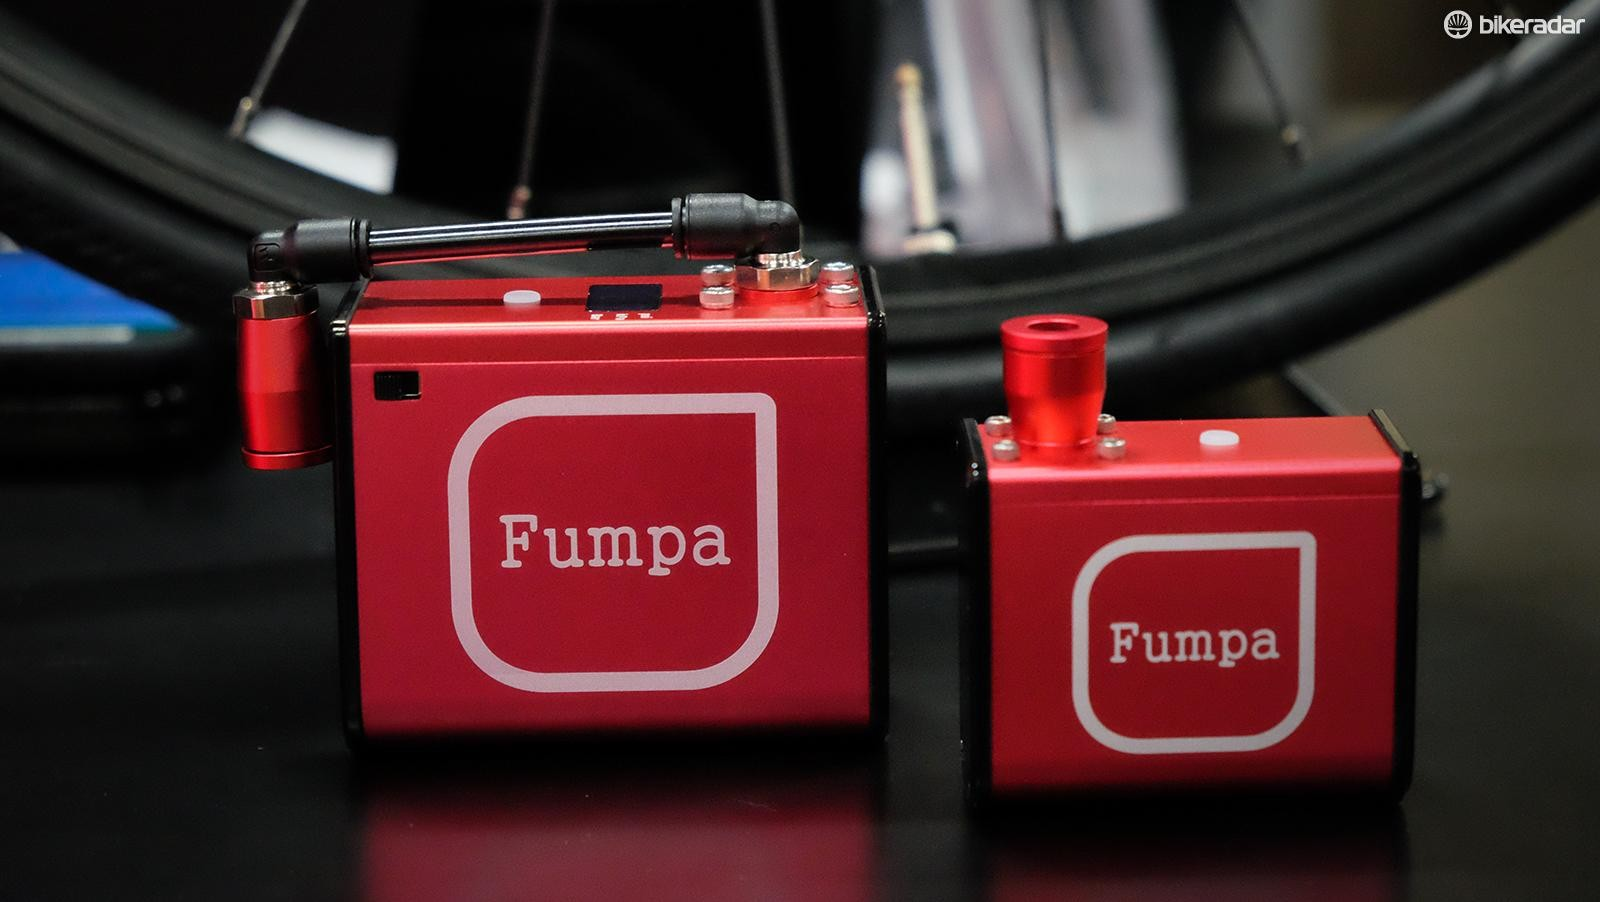 The Fumpa and MiniFumpa